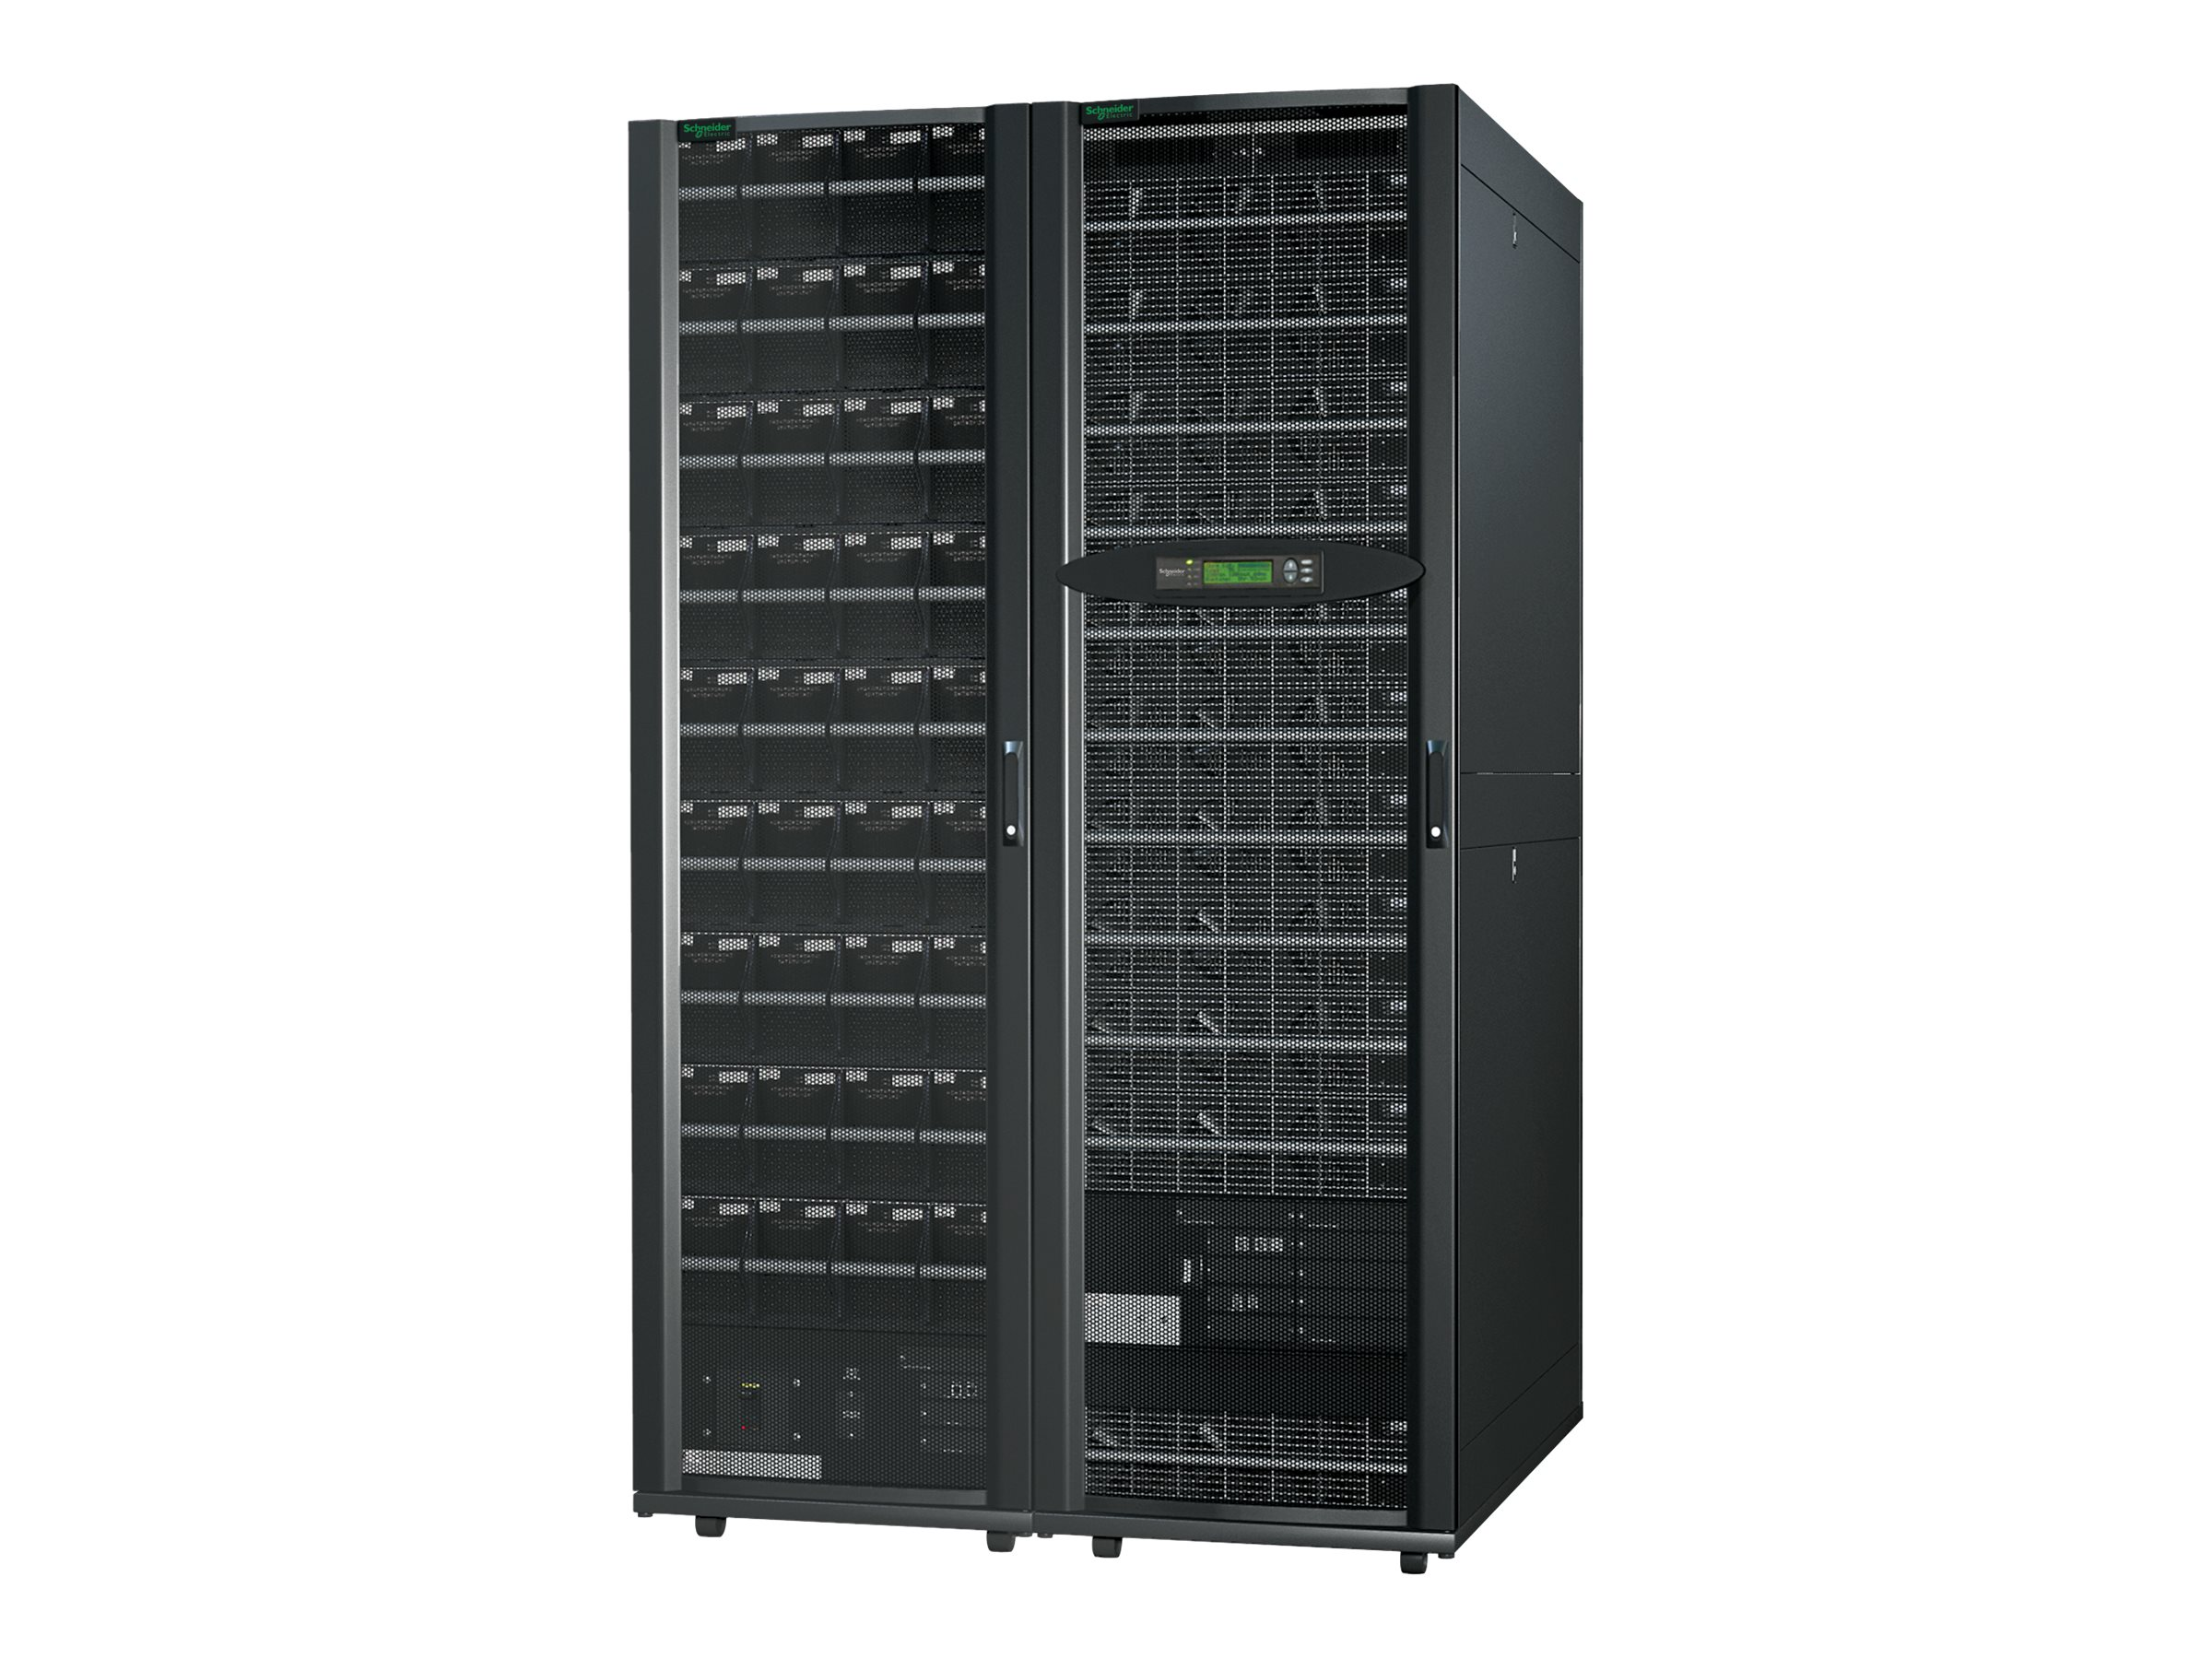 APC Symmetra PX 100kW Scalable to 100kW, 208V with Startup, SY100K100F